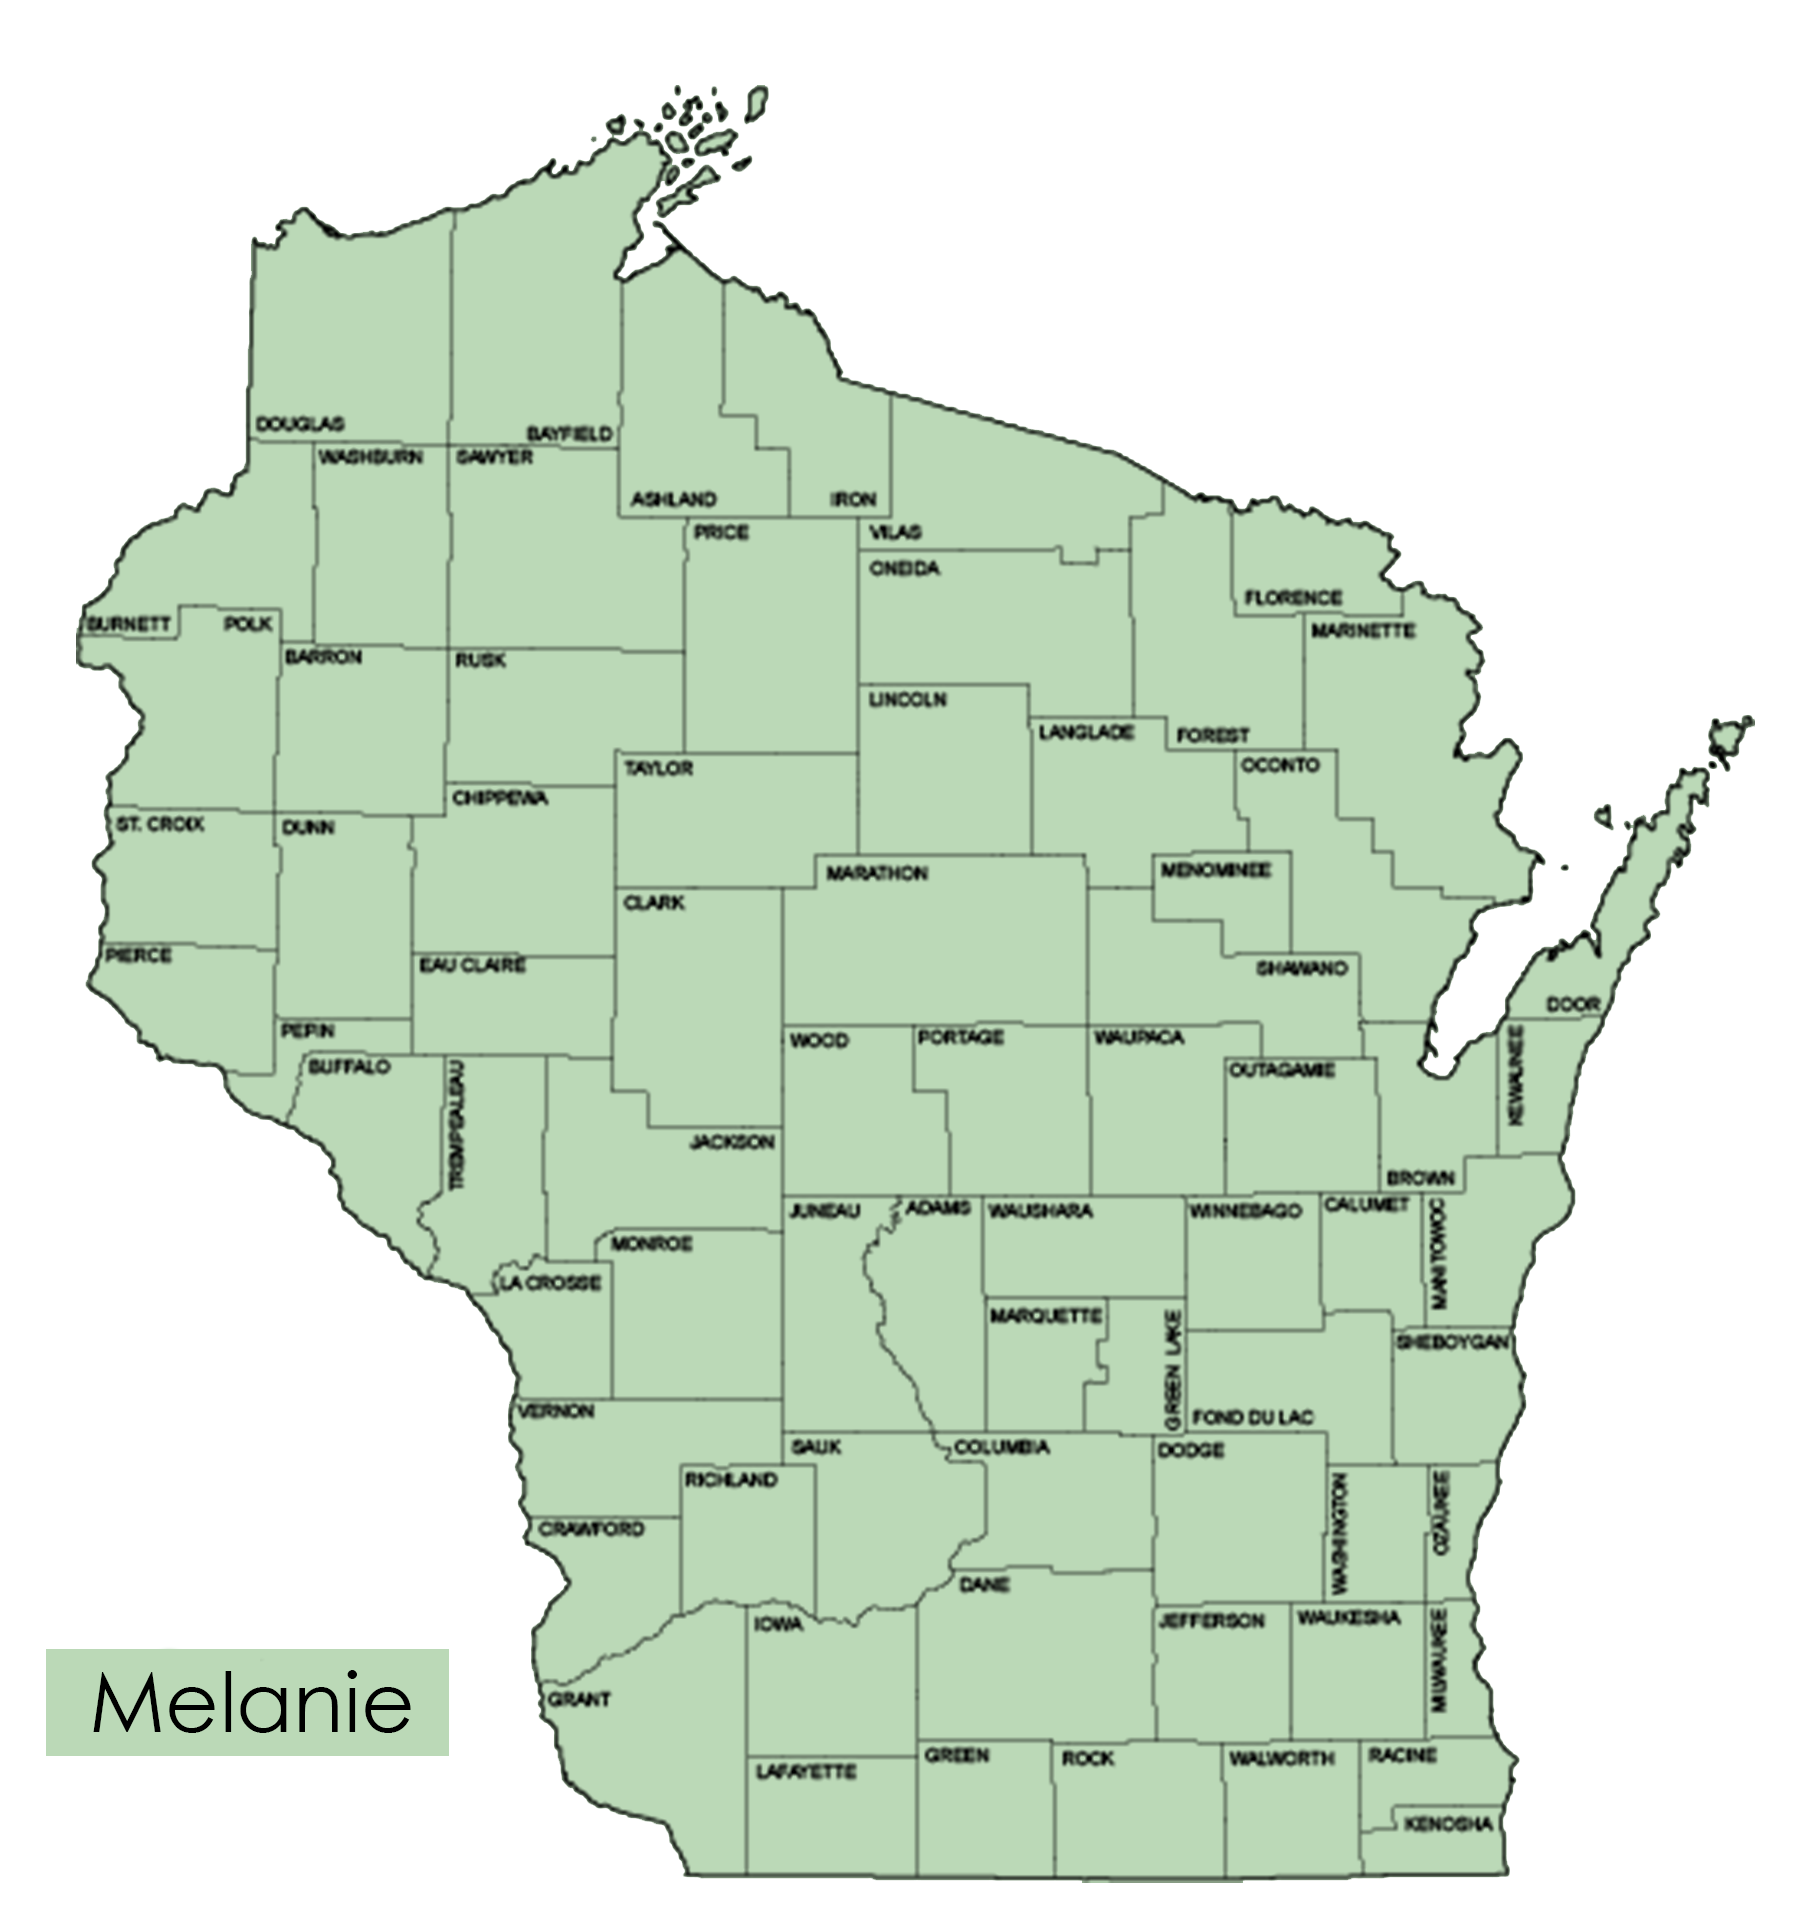 Map of all the countis in Wisconsin